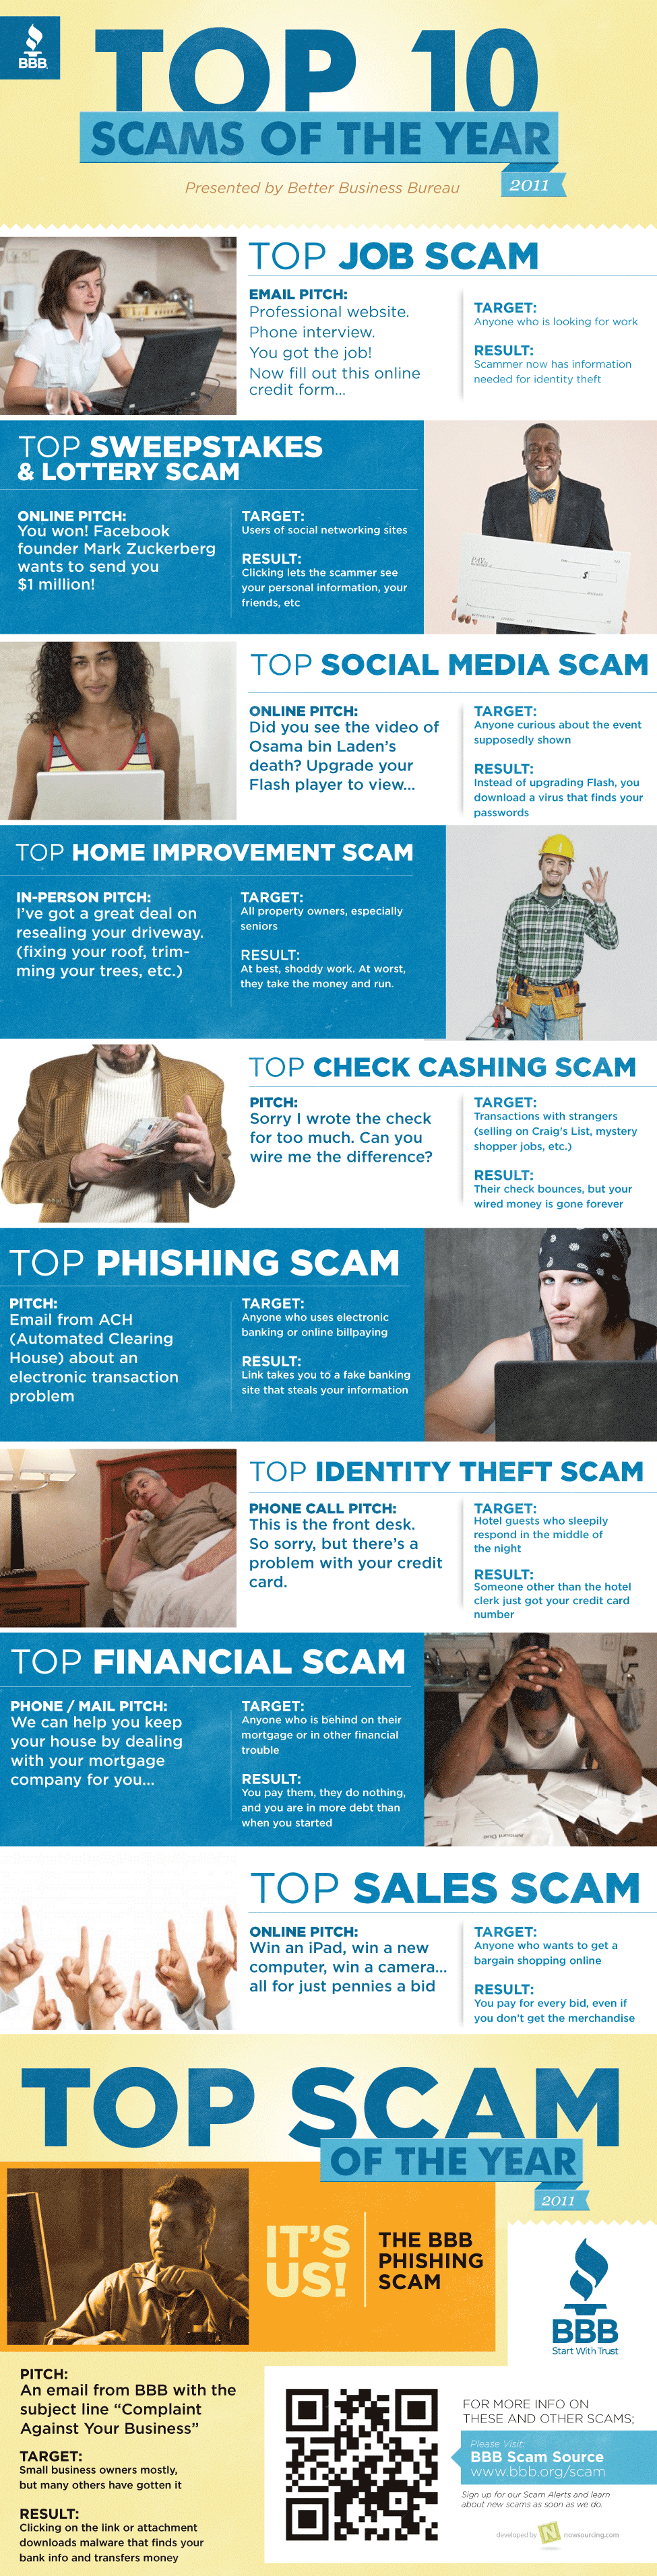 top scams of 2011 Top 10 Scams of 2011 [Infographic]